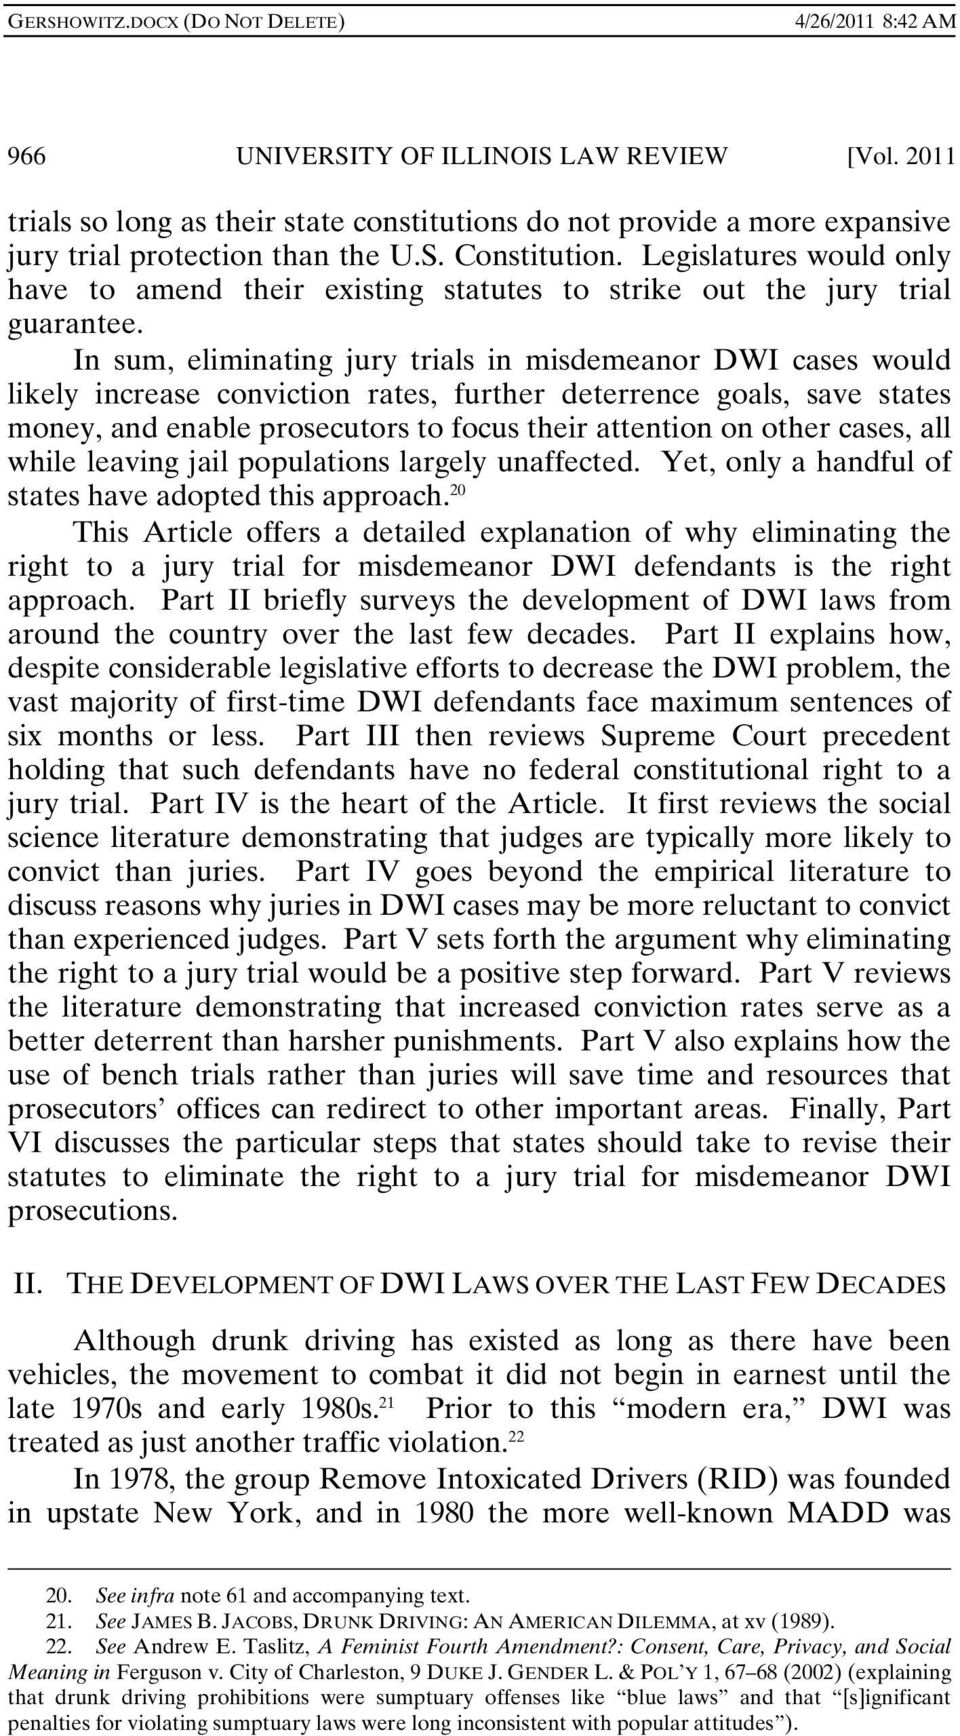 In sum, eliminating jury trials in misdemeanor DWI cases would likely increase conviction rates, further deterrence goals, save states money, and enable prosecutors to focus their attention on other